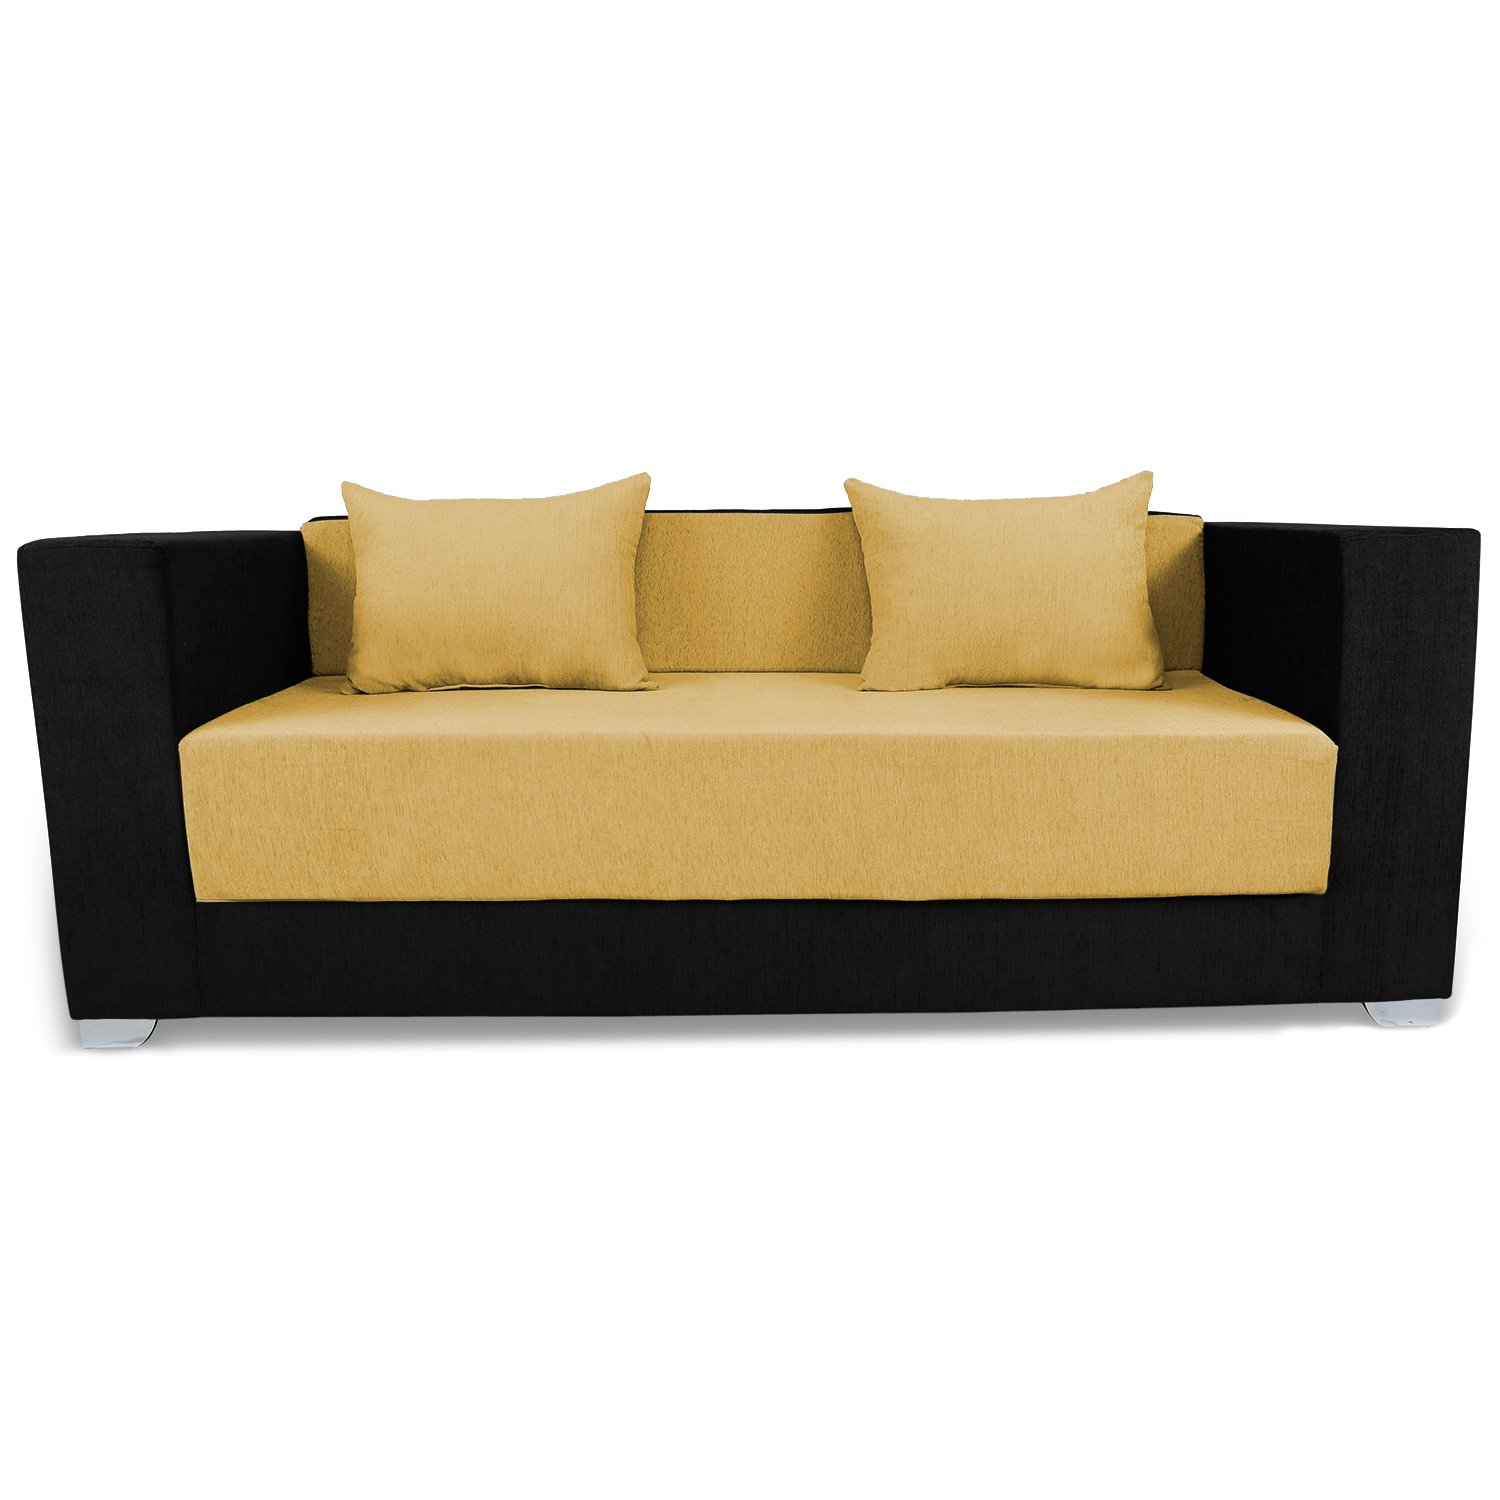 Adorn India Almond 3 Seater Sofa cumbed(Yellow & Black)